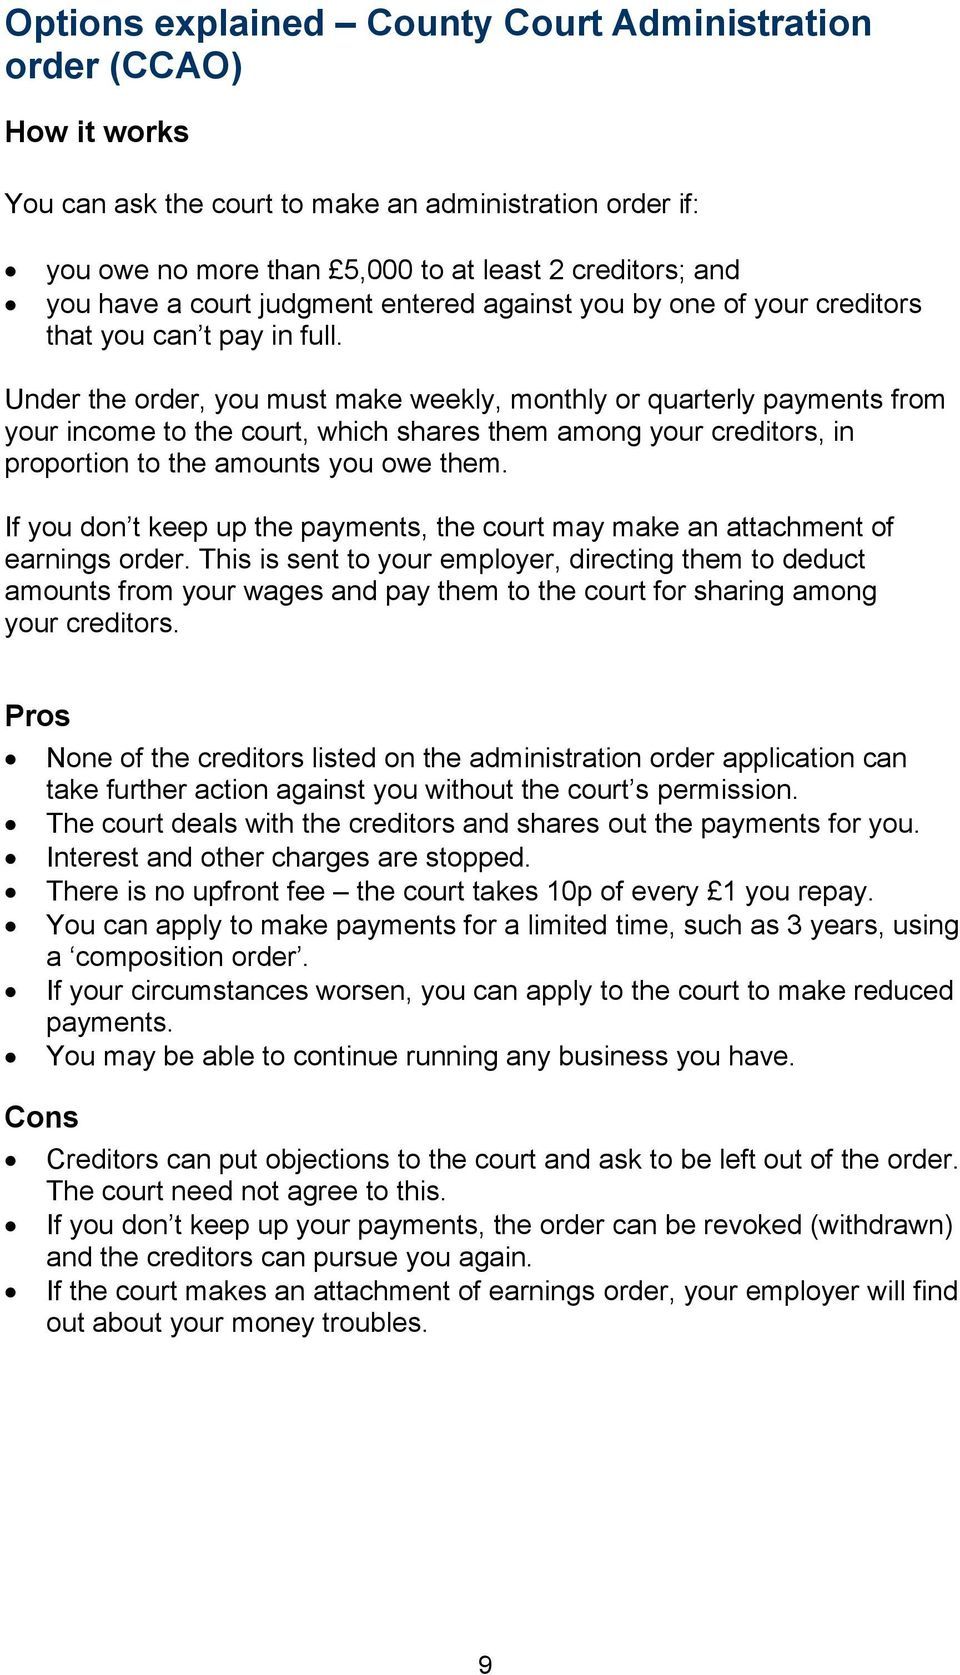 Under the order, you must make weekly, monthly or quarterly payments from your income to the court, which shares them among your creditors, in proportion to the amounts you owe them.